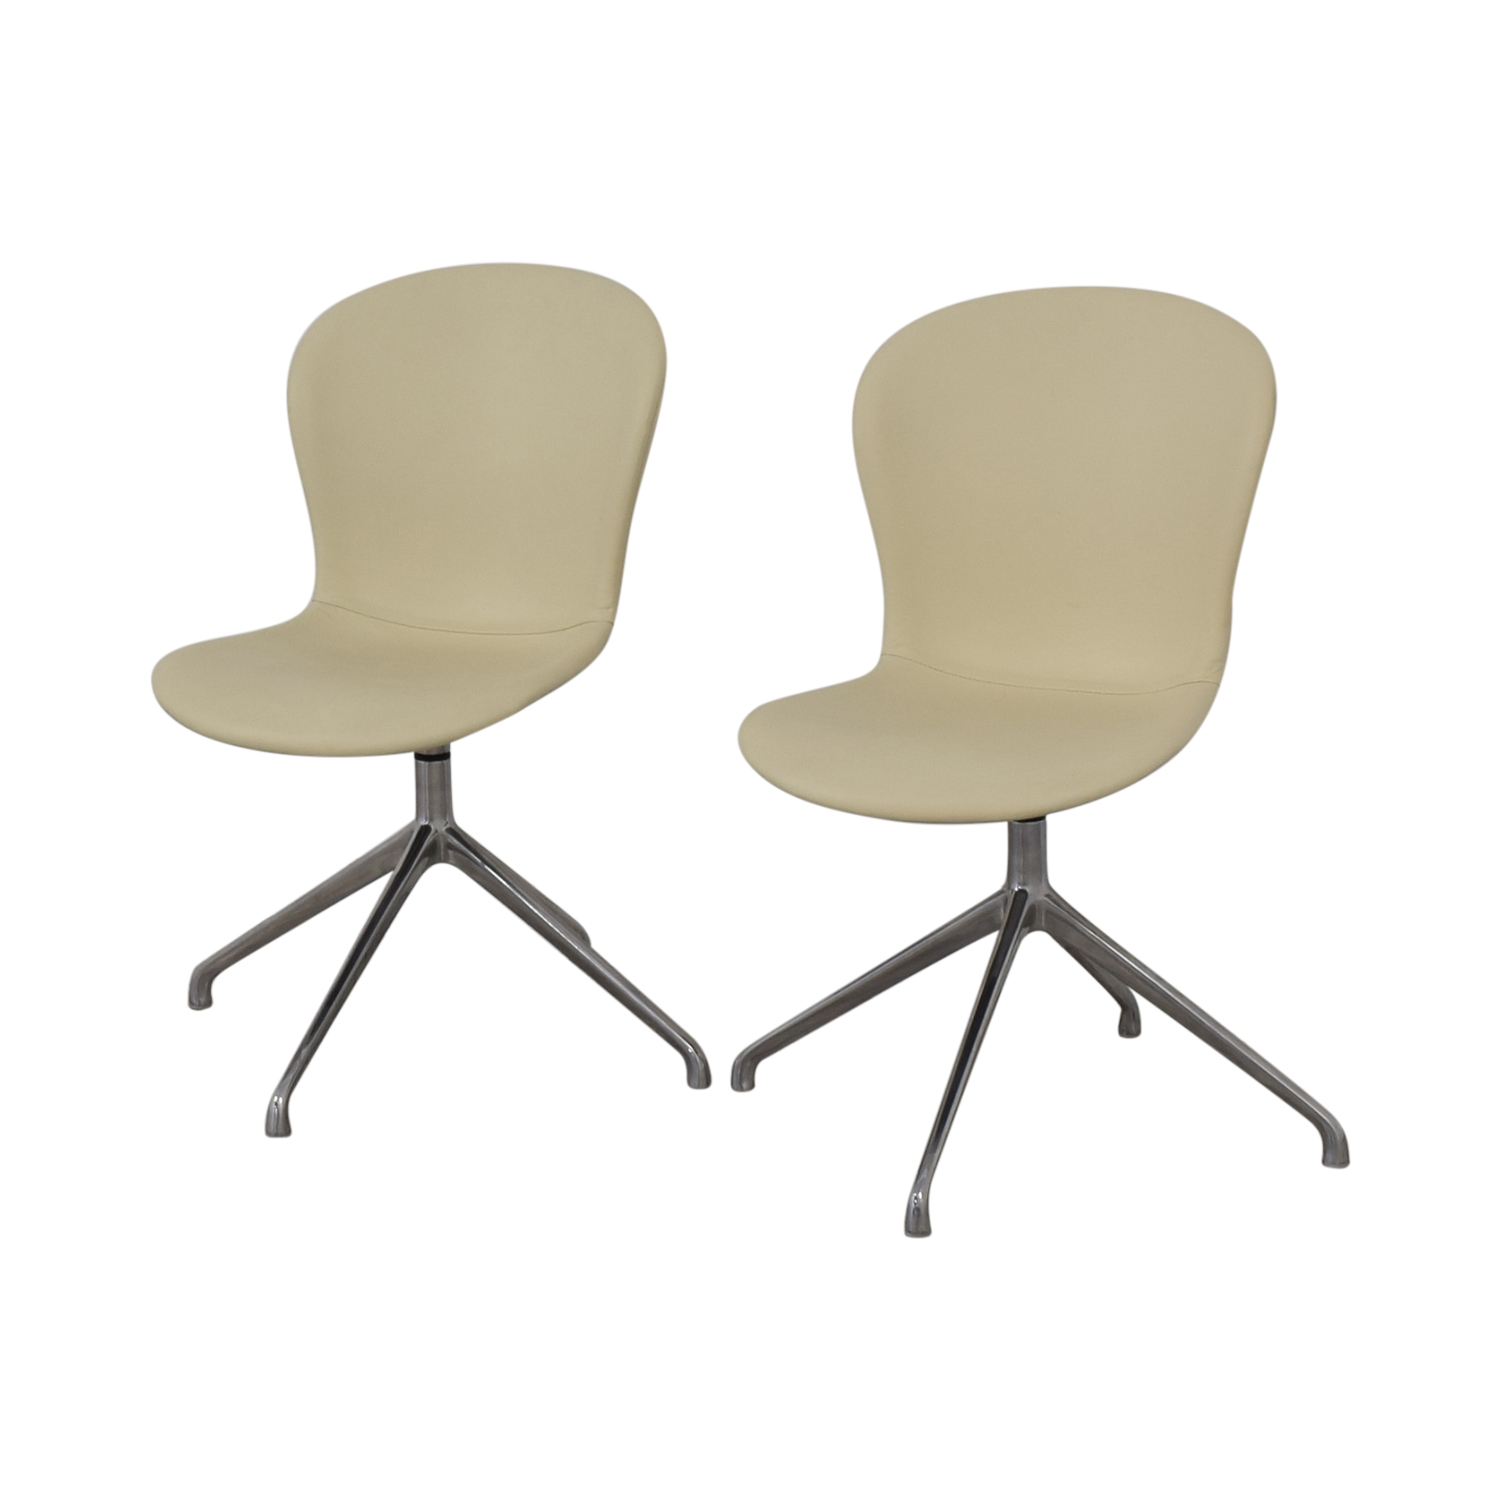 BoConcept BoConcept Adelaide Dining Chairs used